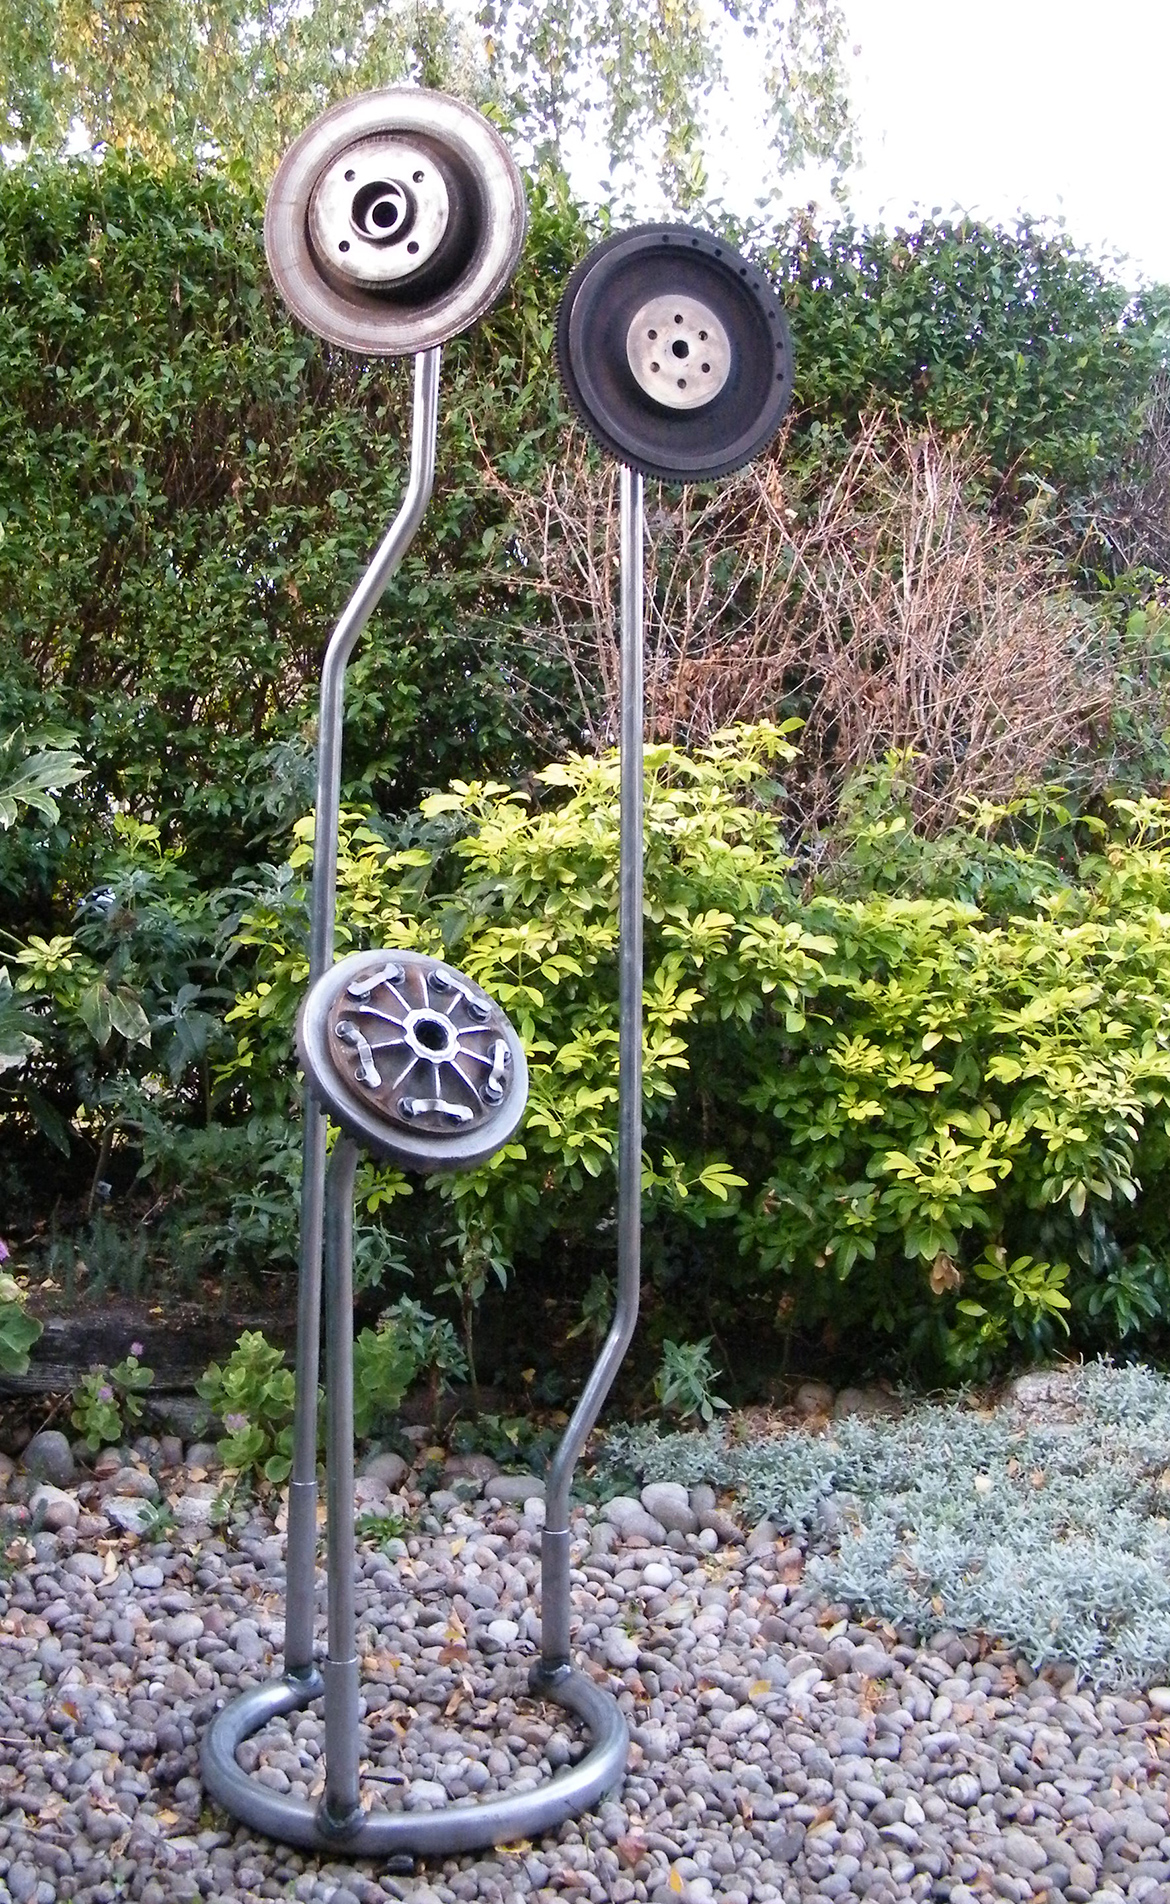 Welded metal sculpture - created from found objects, car parts and metal tubing